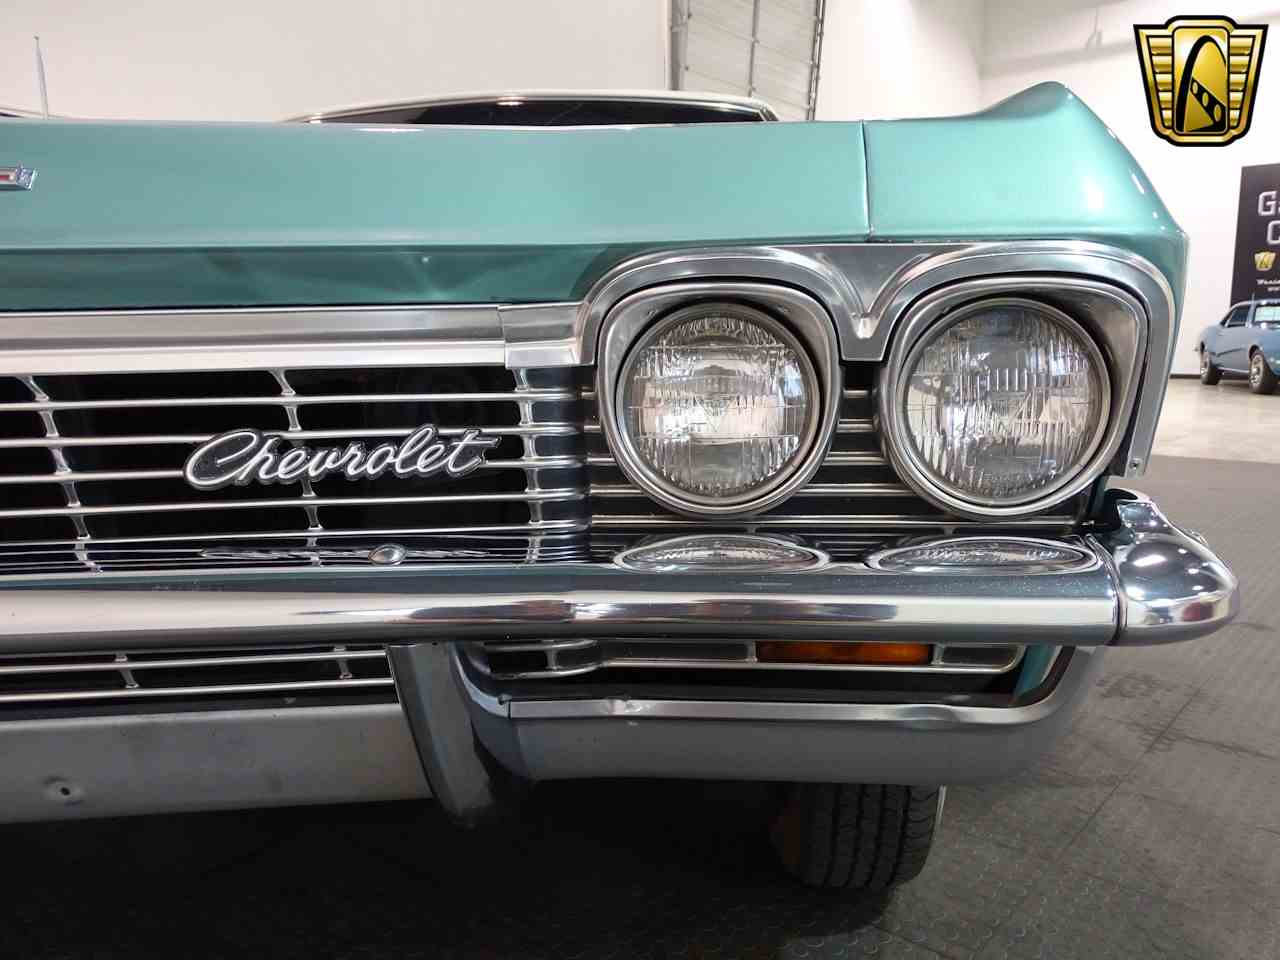 Large Picture of 1965 Chevrolet Impala located in Indiana - $34,995.00 Offered by Gateway Classic Cars - Indianapolis - L5YV